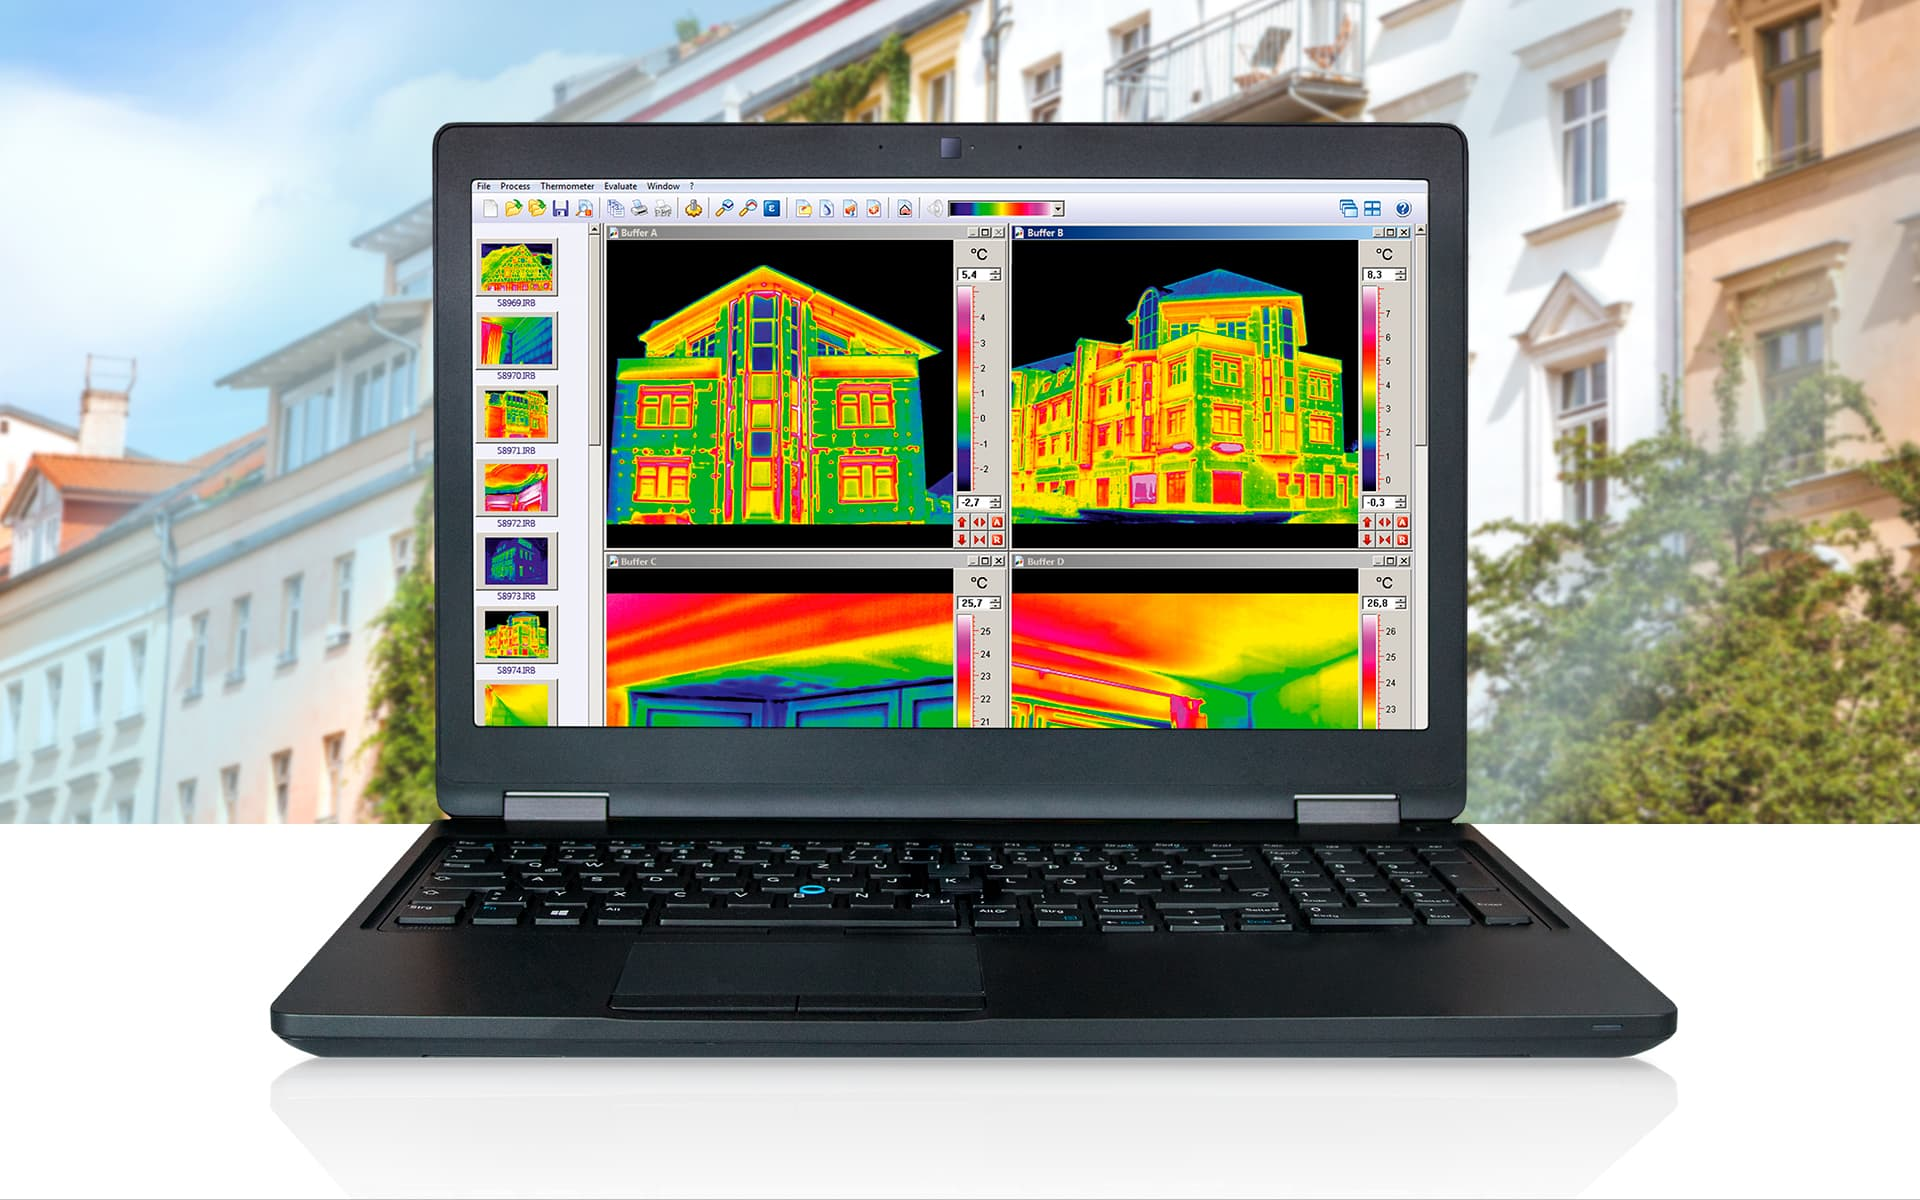 Thermographic Software FORNAX 2 from InfraTec - Picture Credits: © iStock.com / nikada